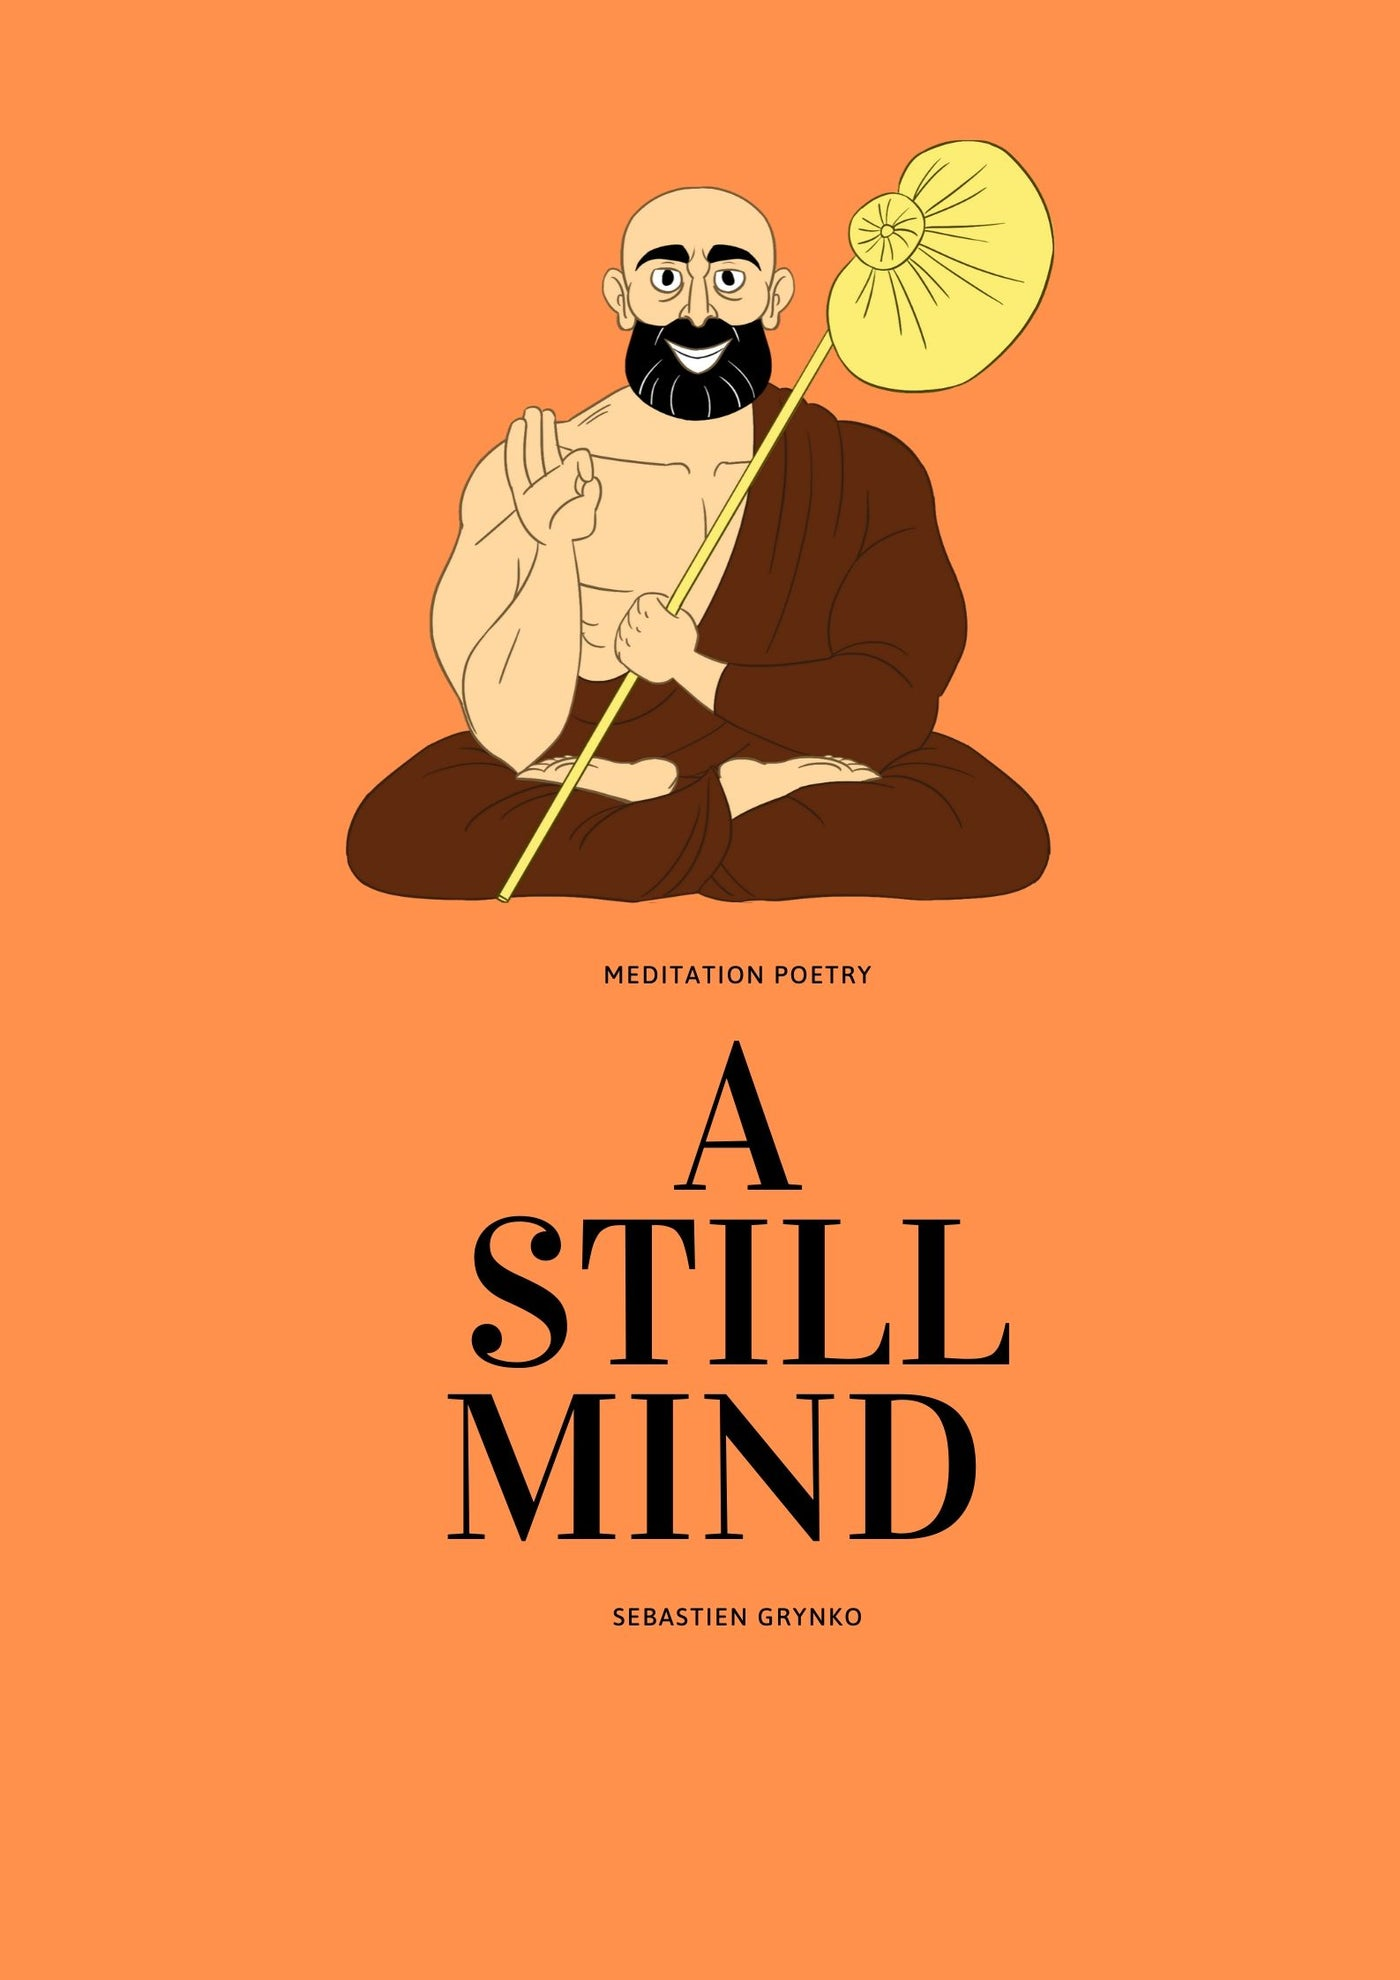 Meditation poetry - A Still Mind